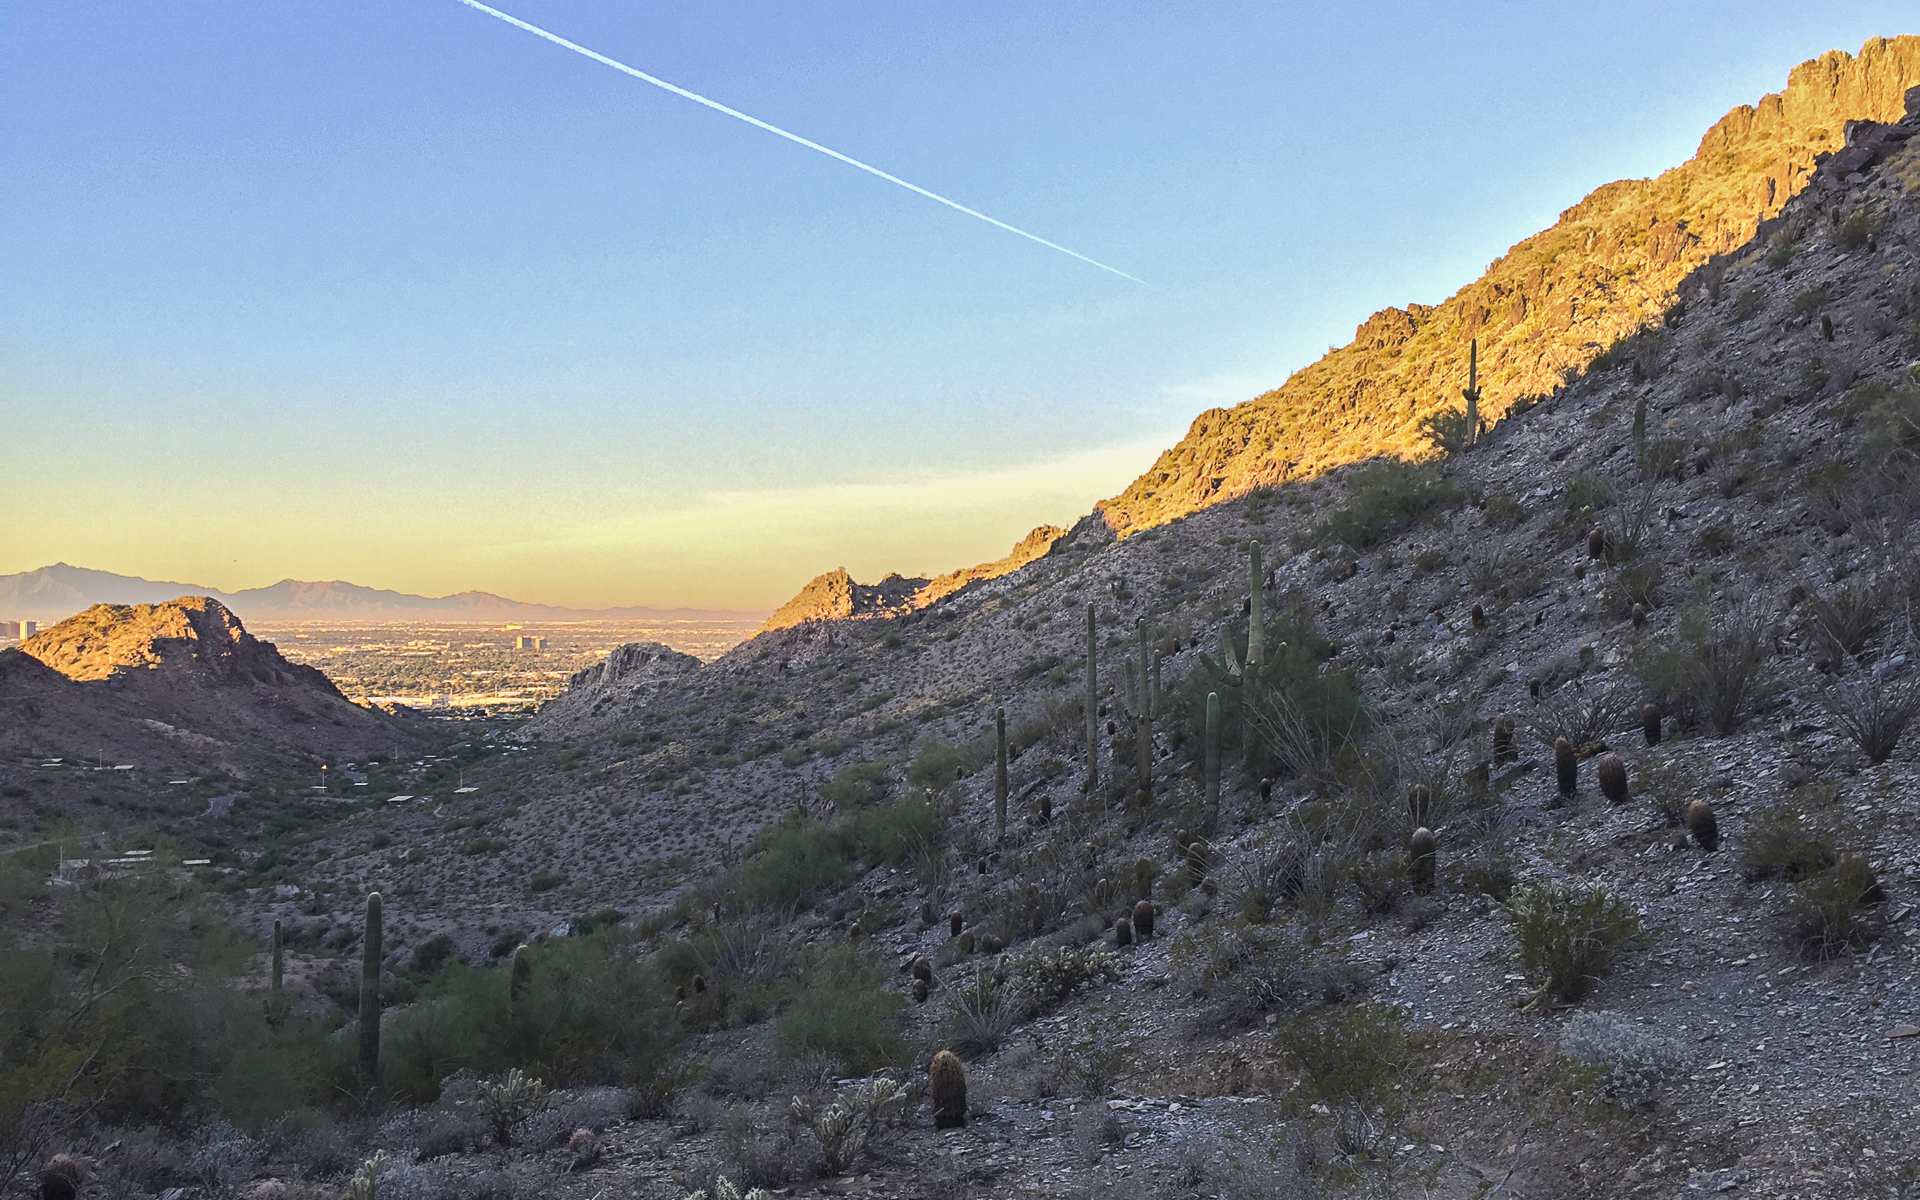 The top of the first climb of the trail run, looking back towards the city.